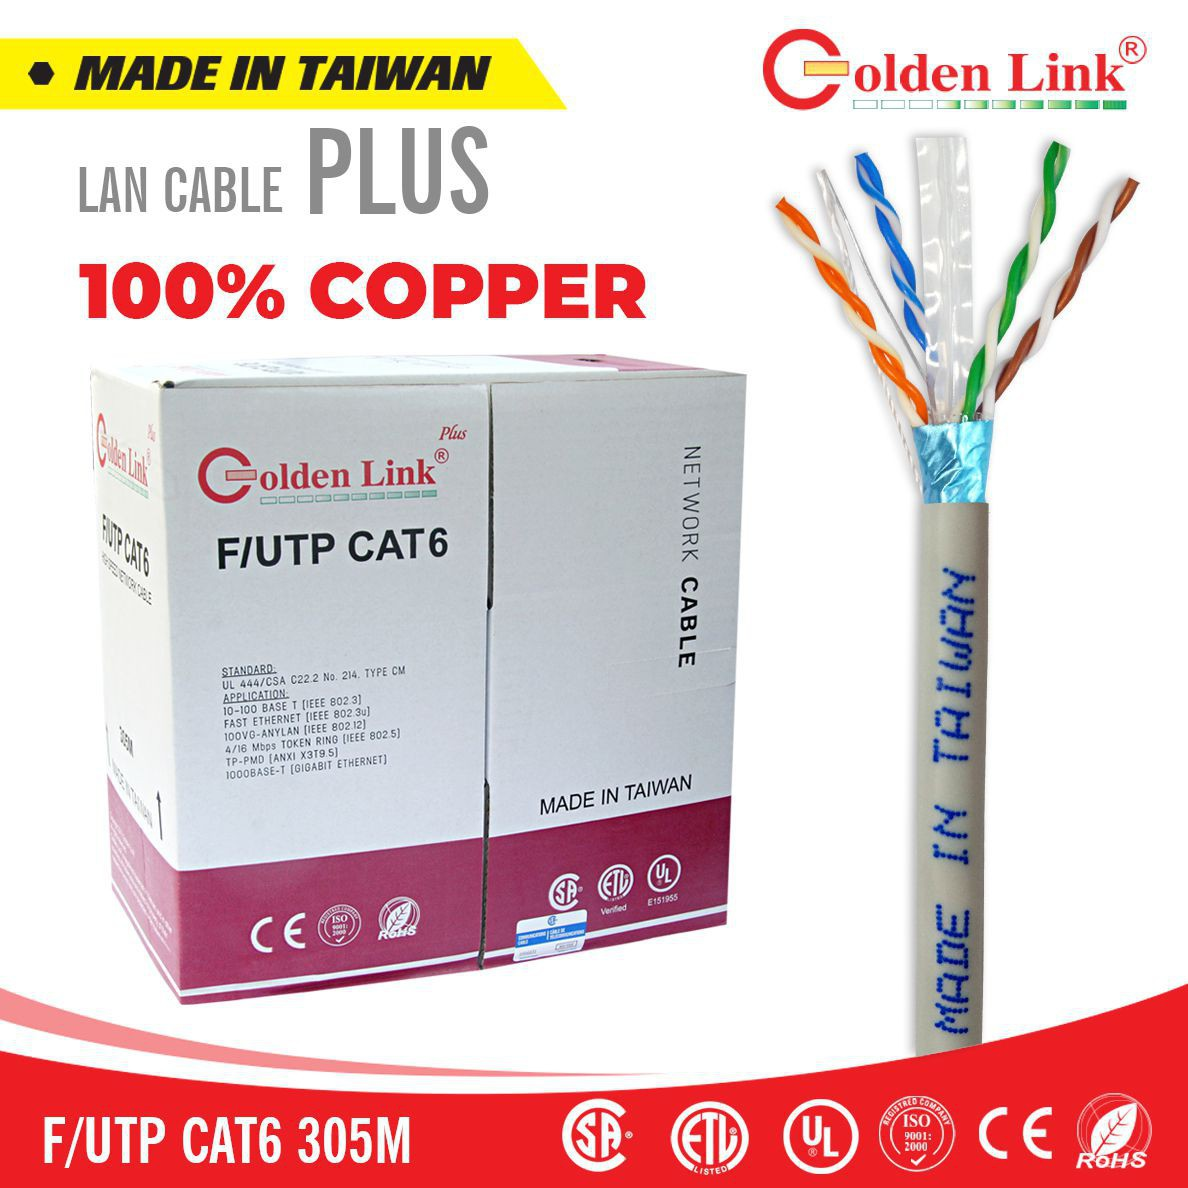 Golden Link Plus F/UTP CAT 6 Network Cable Made in Taiwan